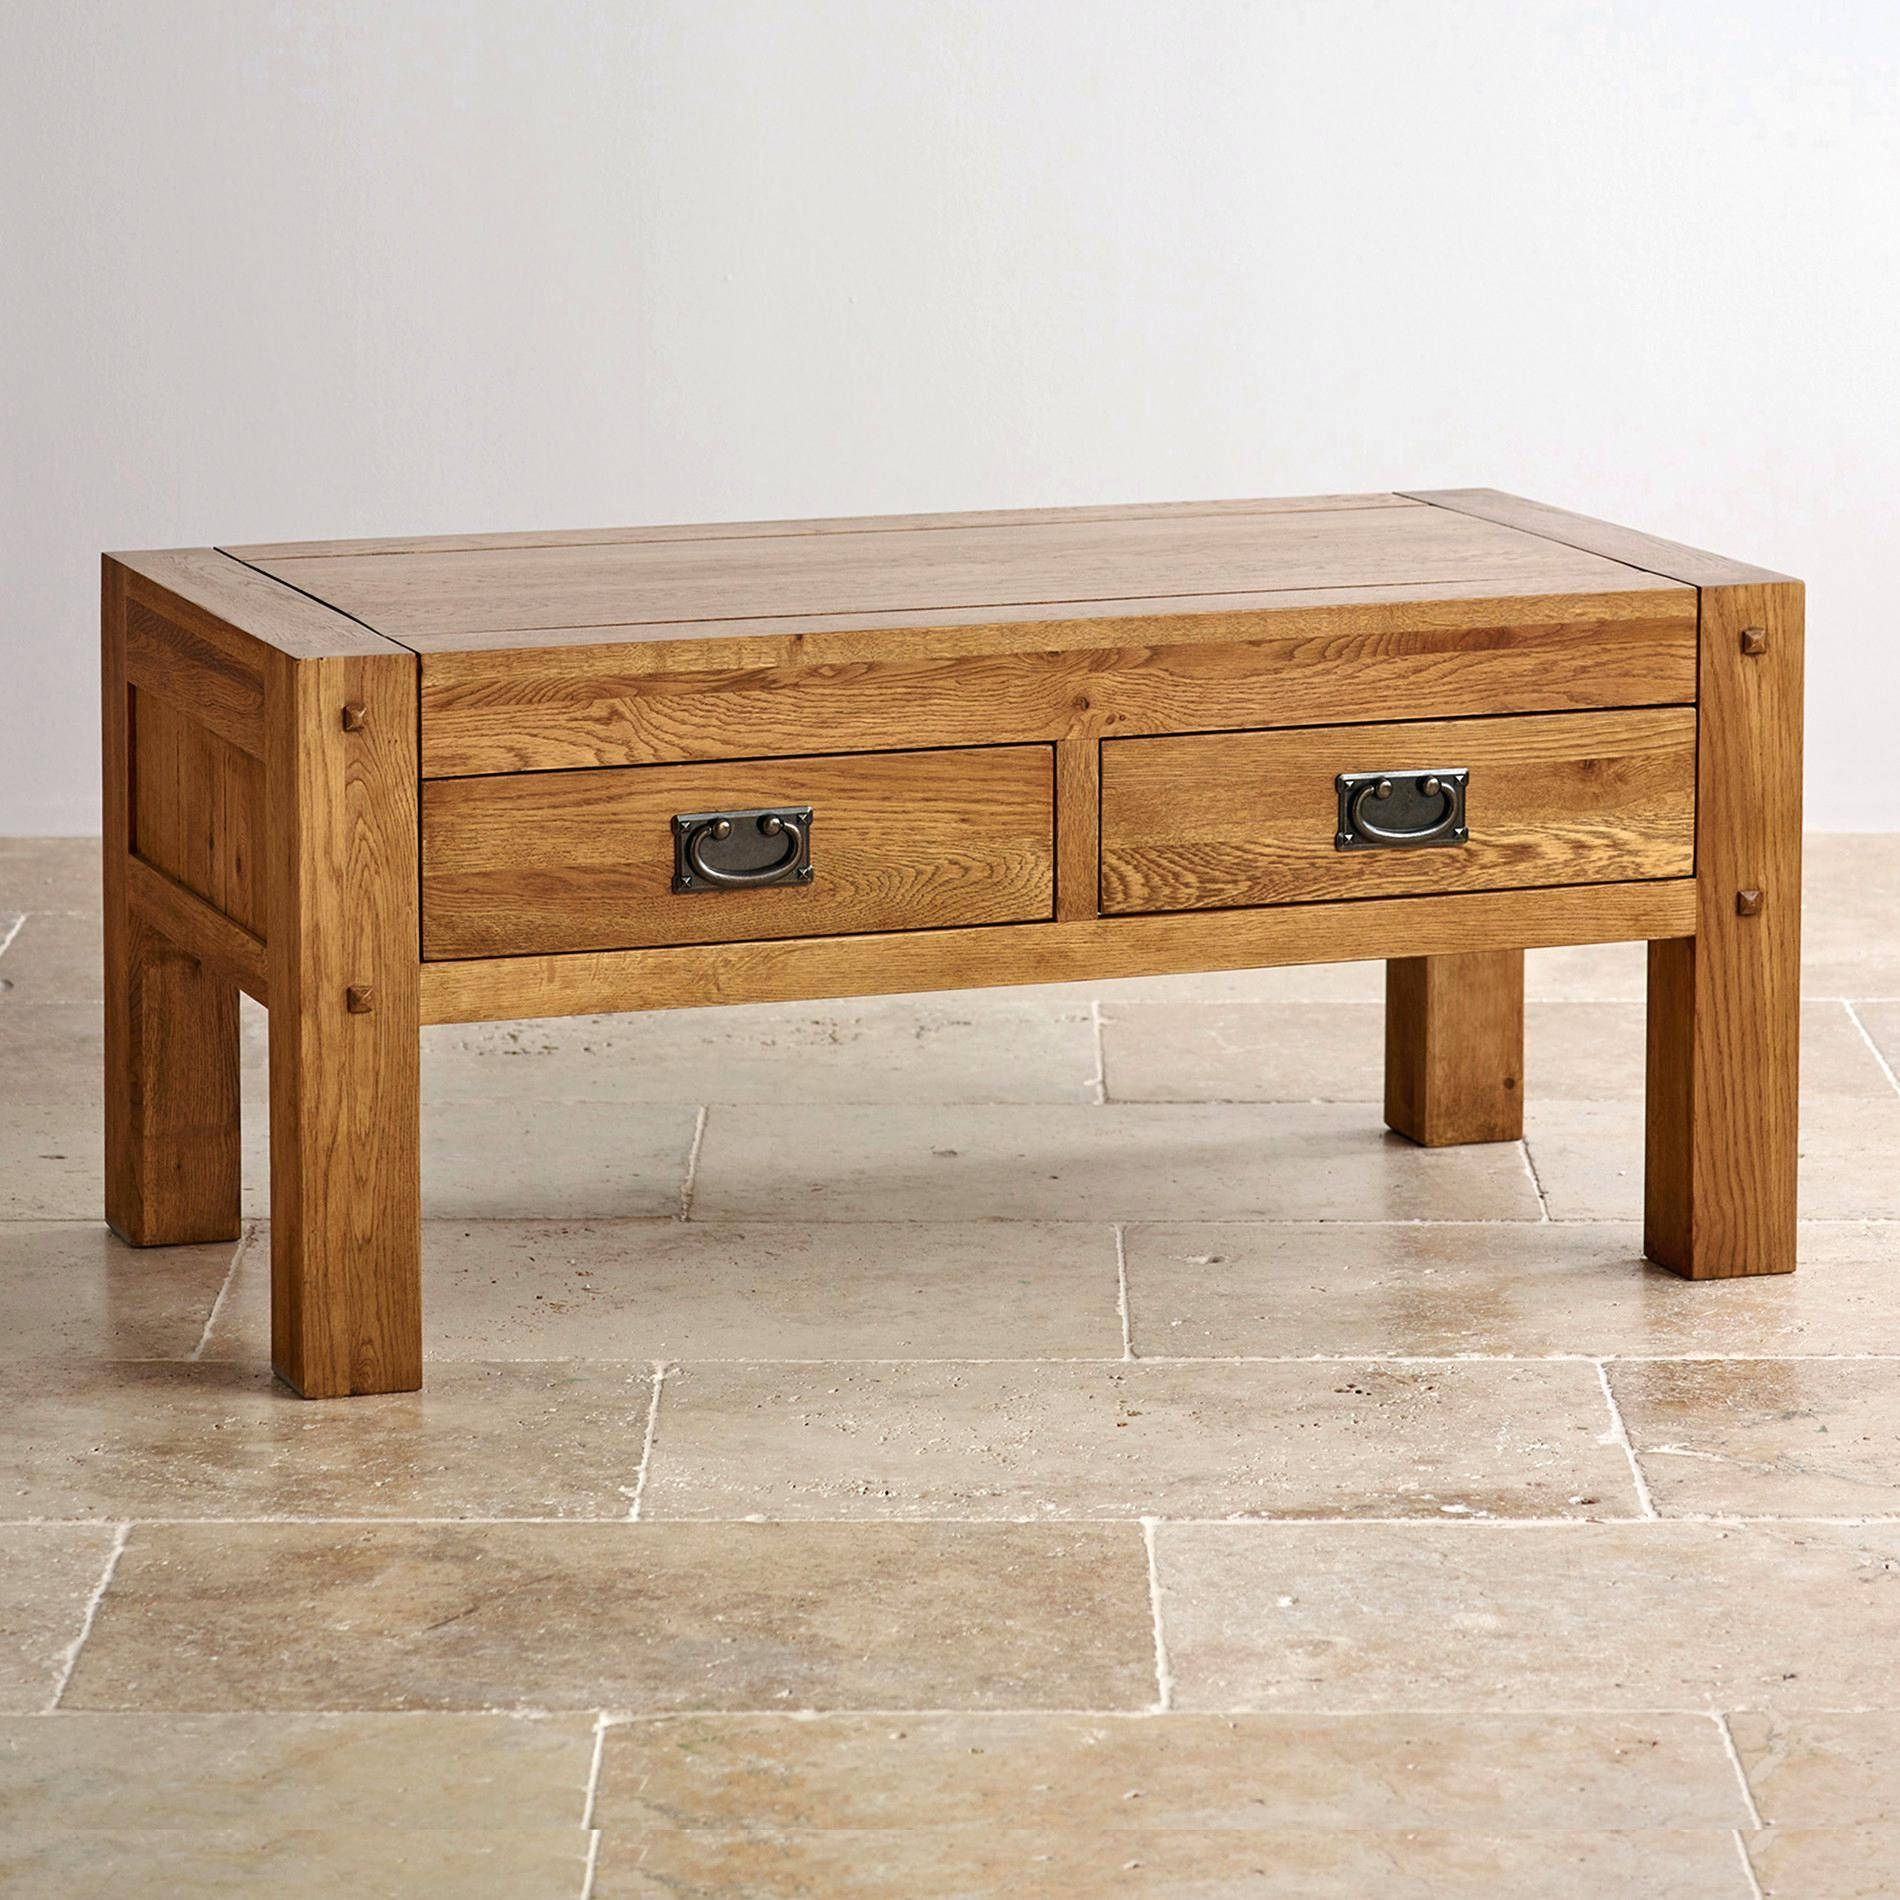 Orly Oak Square Coffee Table With Drawers | Coffee Tables Decoration regarding Oak Square Coffee Tables (Image 22 of 30)